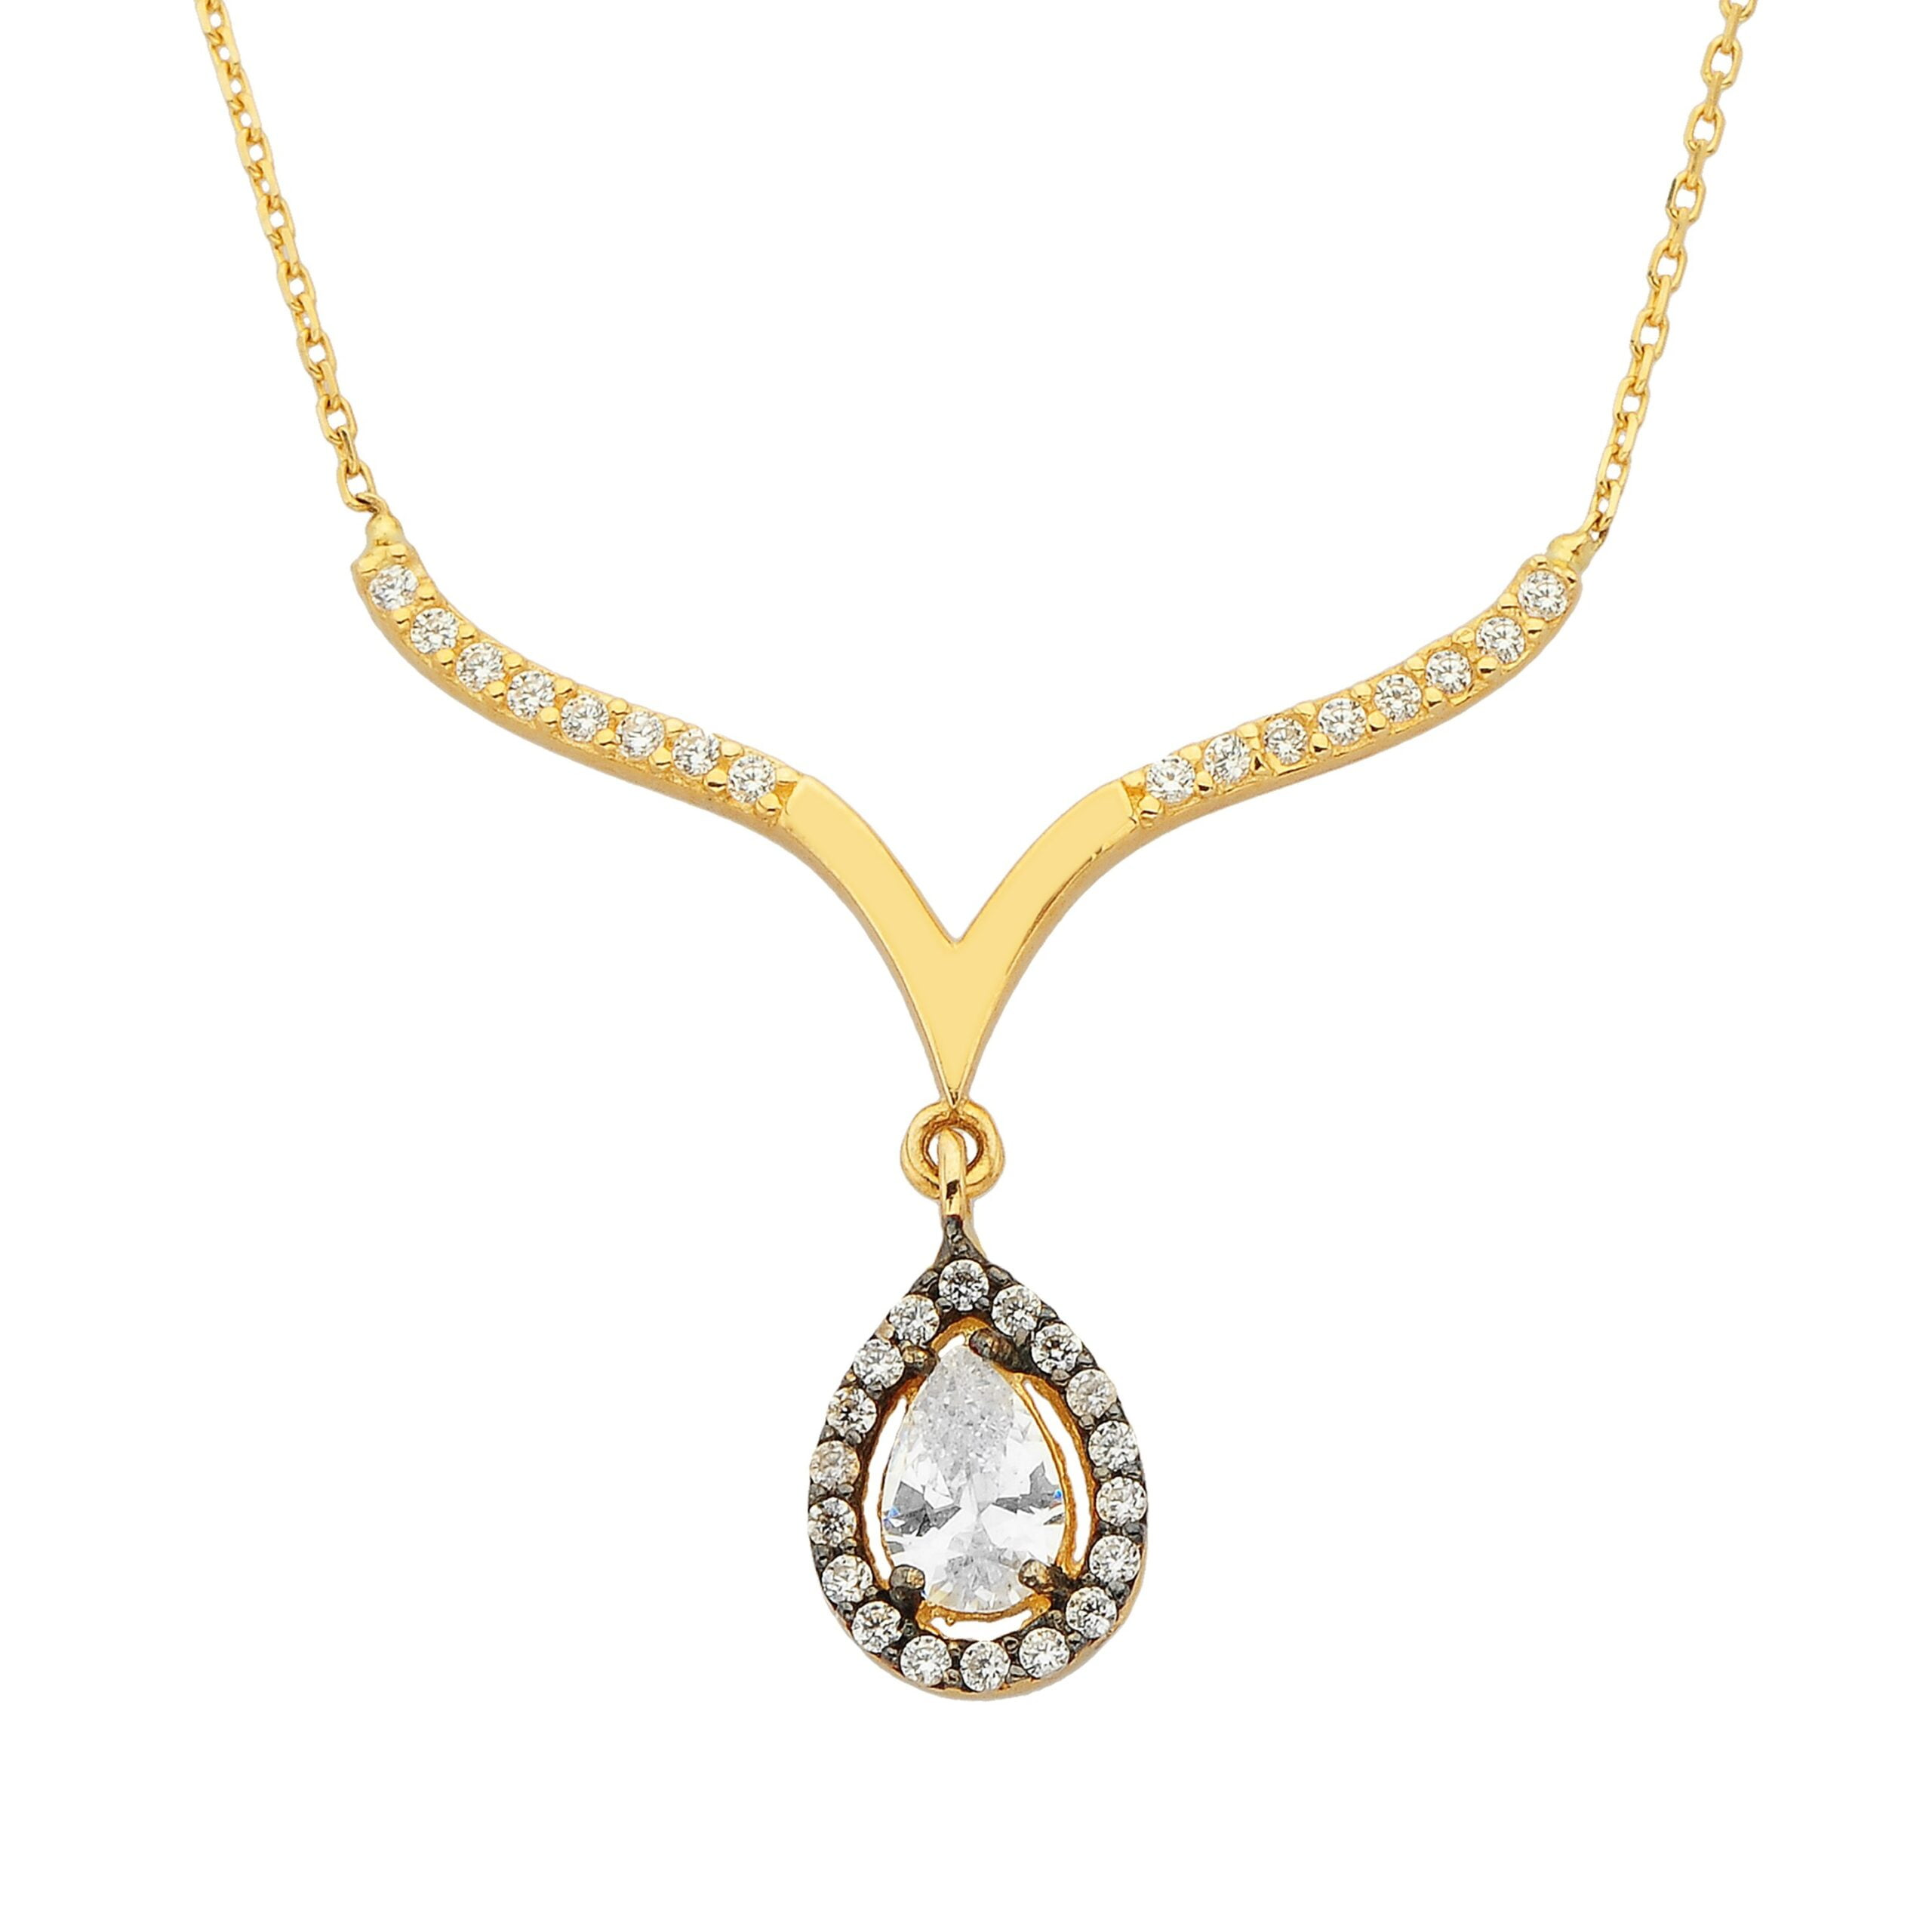 14K Real Solid Yellow Gold Tear Drop Halo Cubic Zirconia Necklace | Tear Drop Pendant Jewelry for Women's Wedding Bridal Christmas Mother's Day Birthday Gift